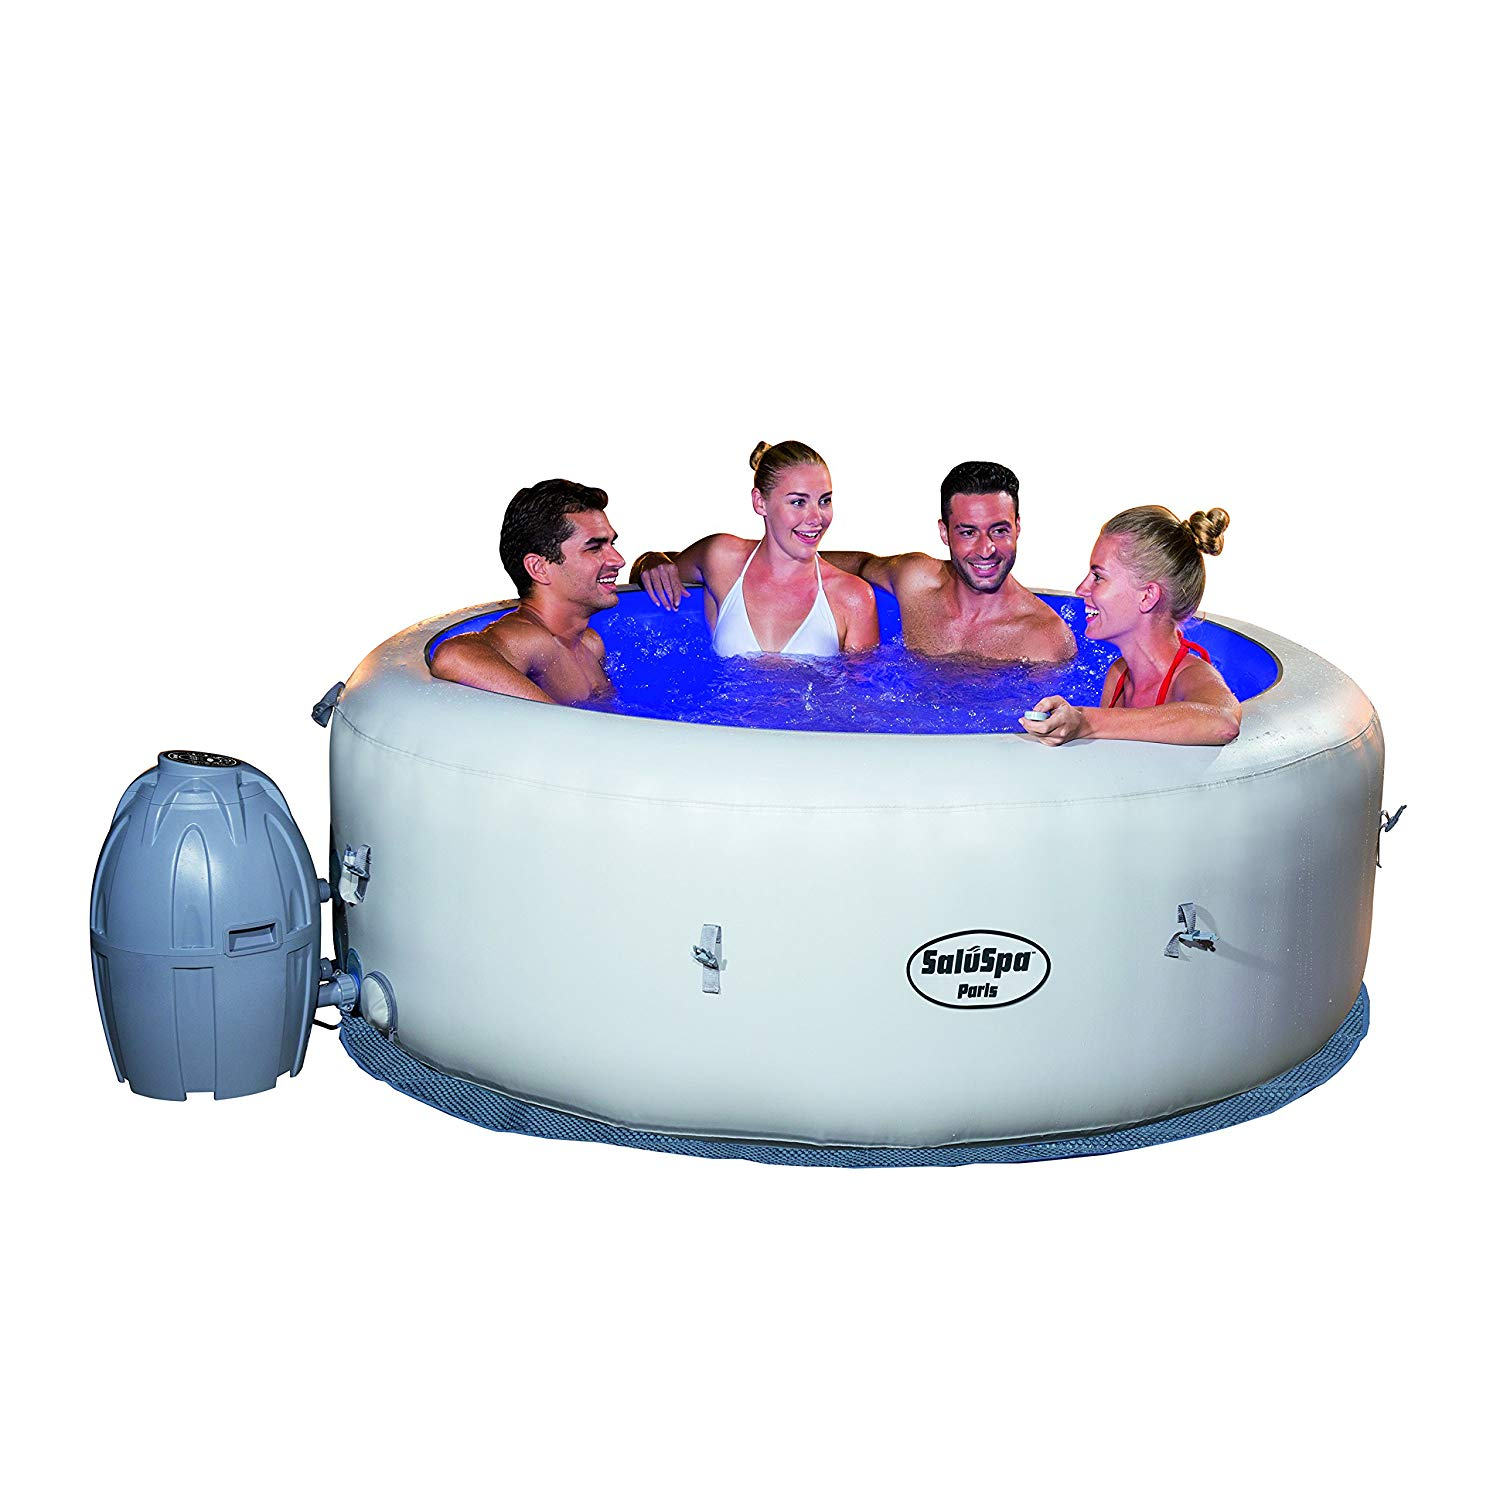 Bestway saluspa Paris air jet inflatable hot tub w/LED light show